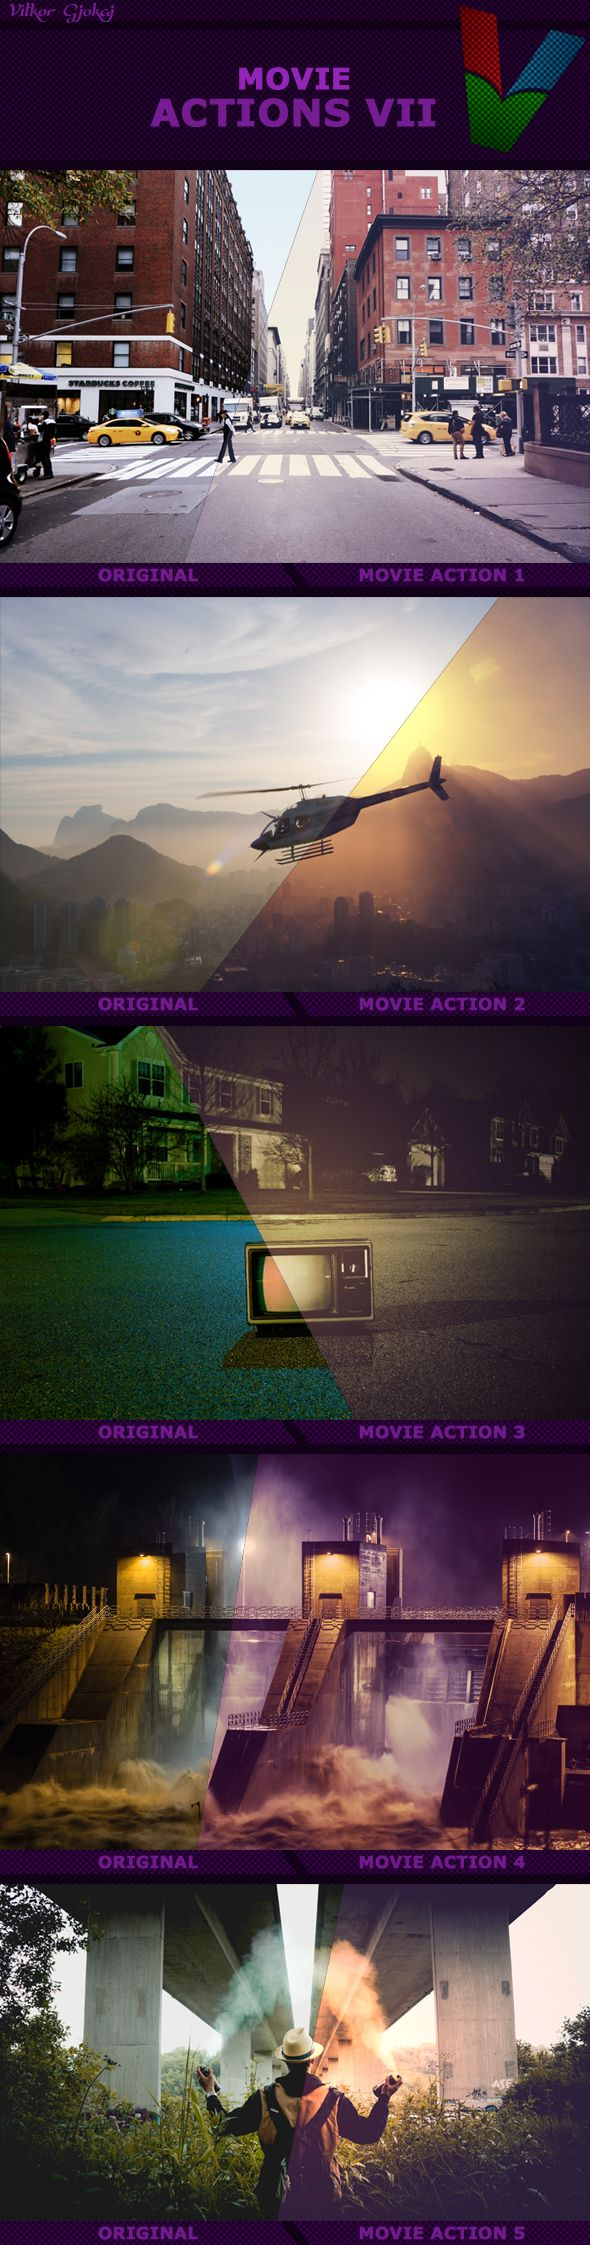 Movie Photoshop Actions. Download here: https://graphicriver.net/item/movie-actions-vii/17096954?ref=ksioks